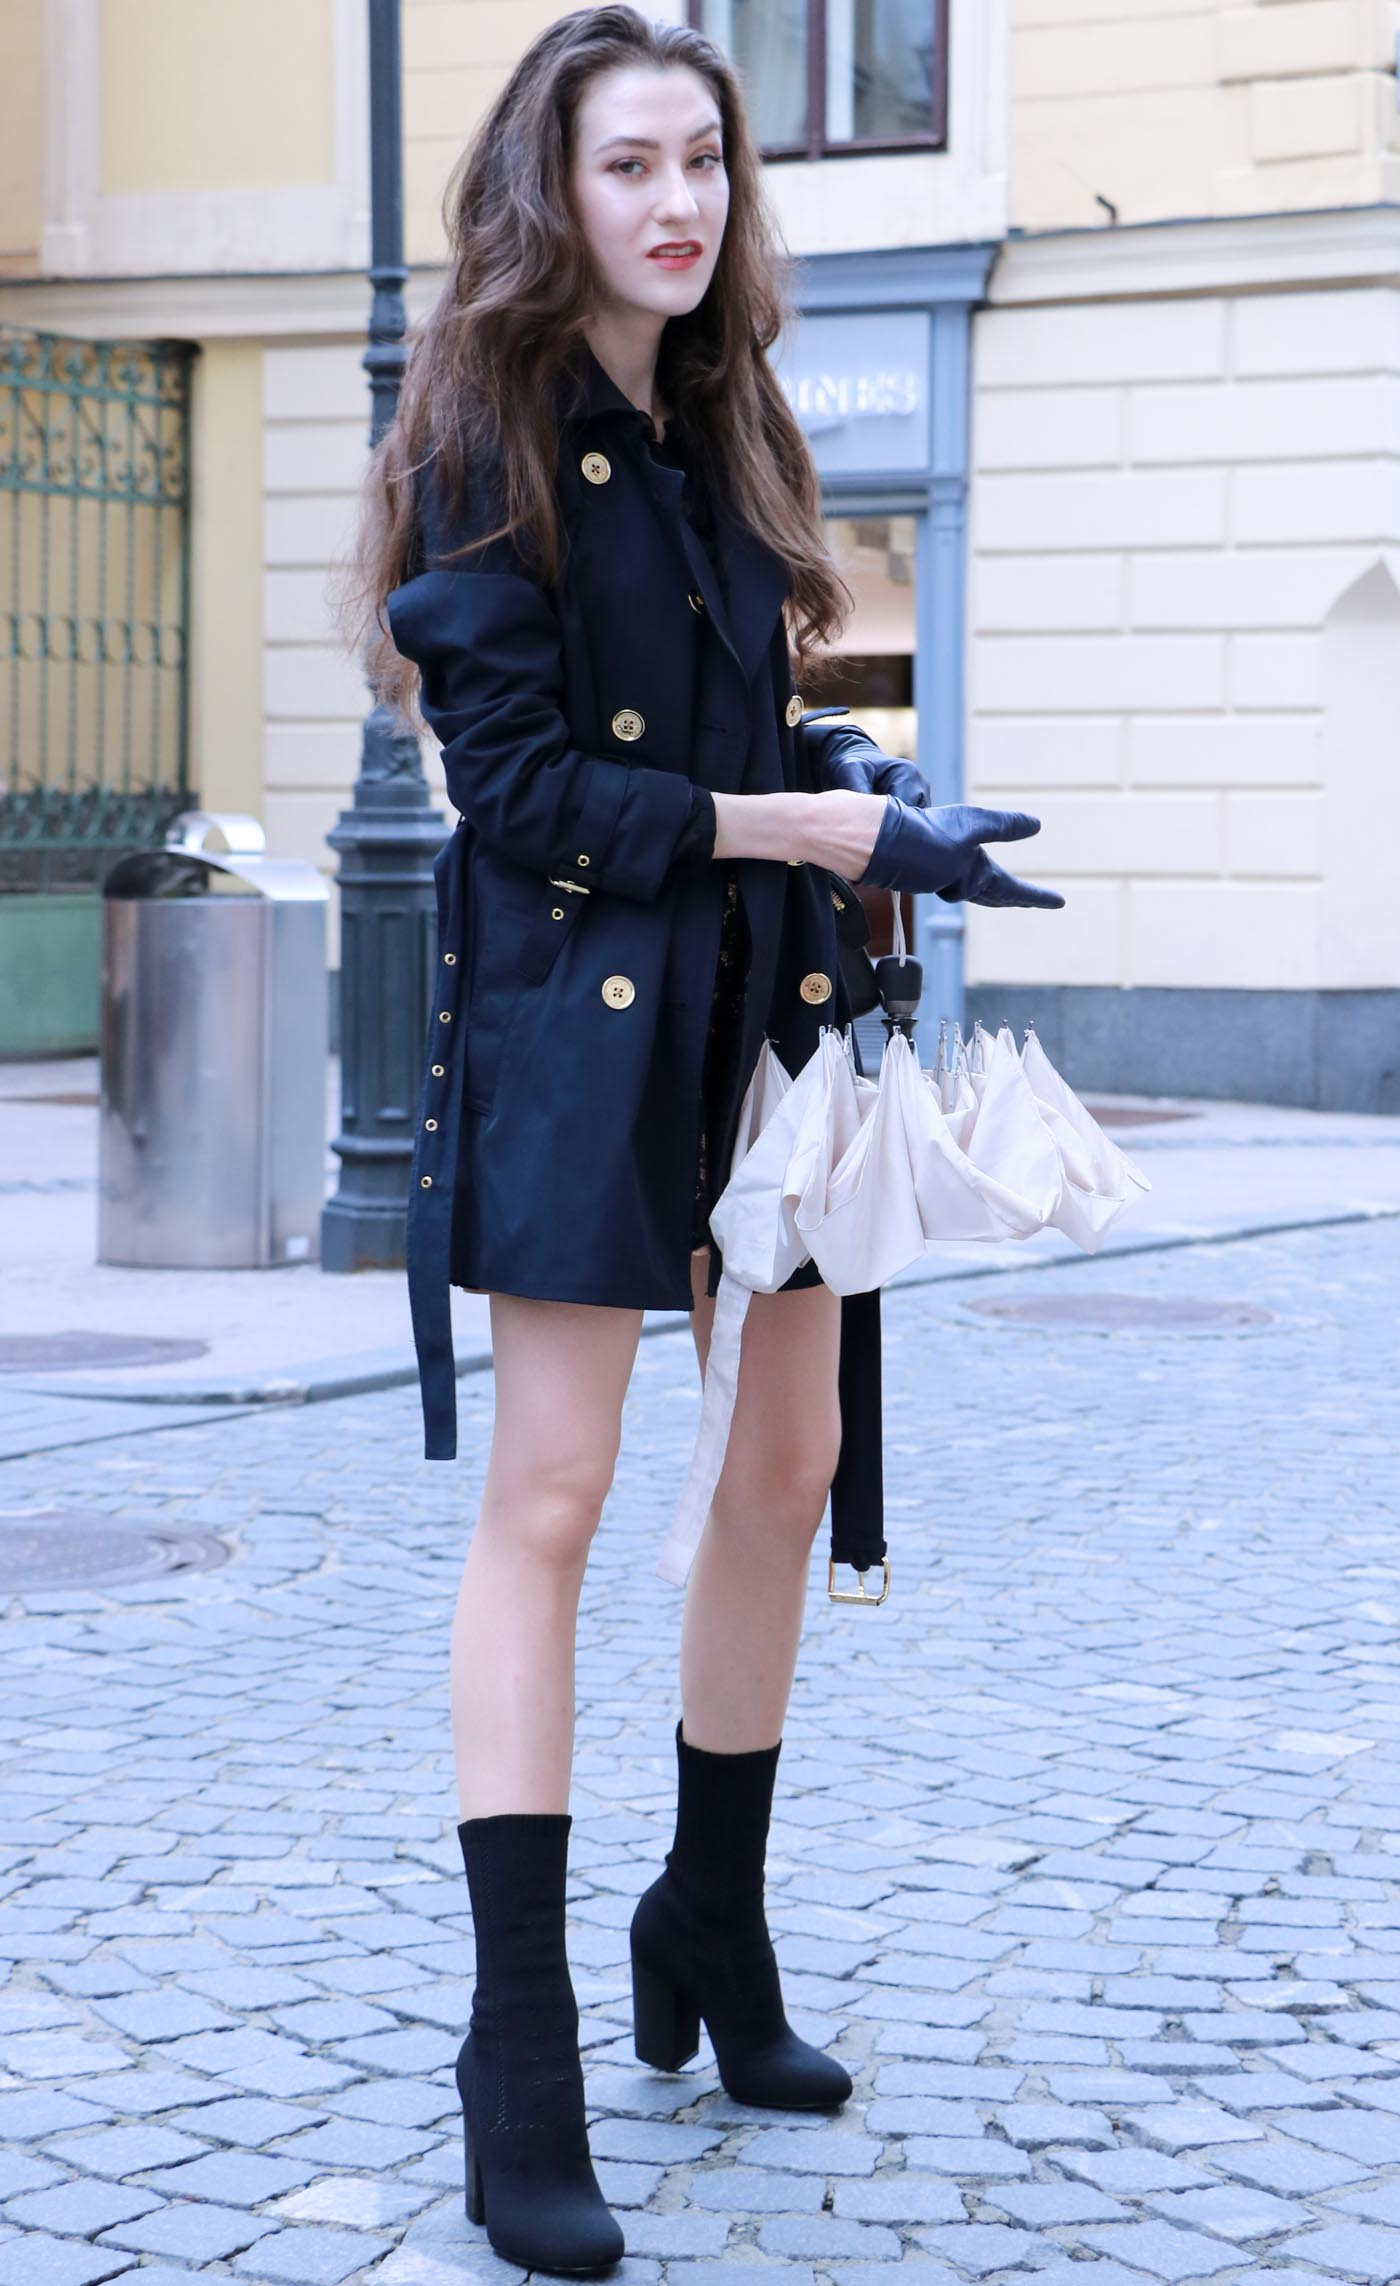 Fashion Blogger Veronika Lipar of Brunette from Wall Street dressed in blue trench coat and black sock booties on a rainy day